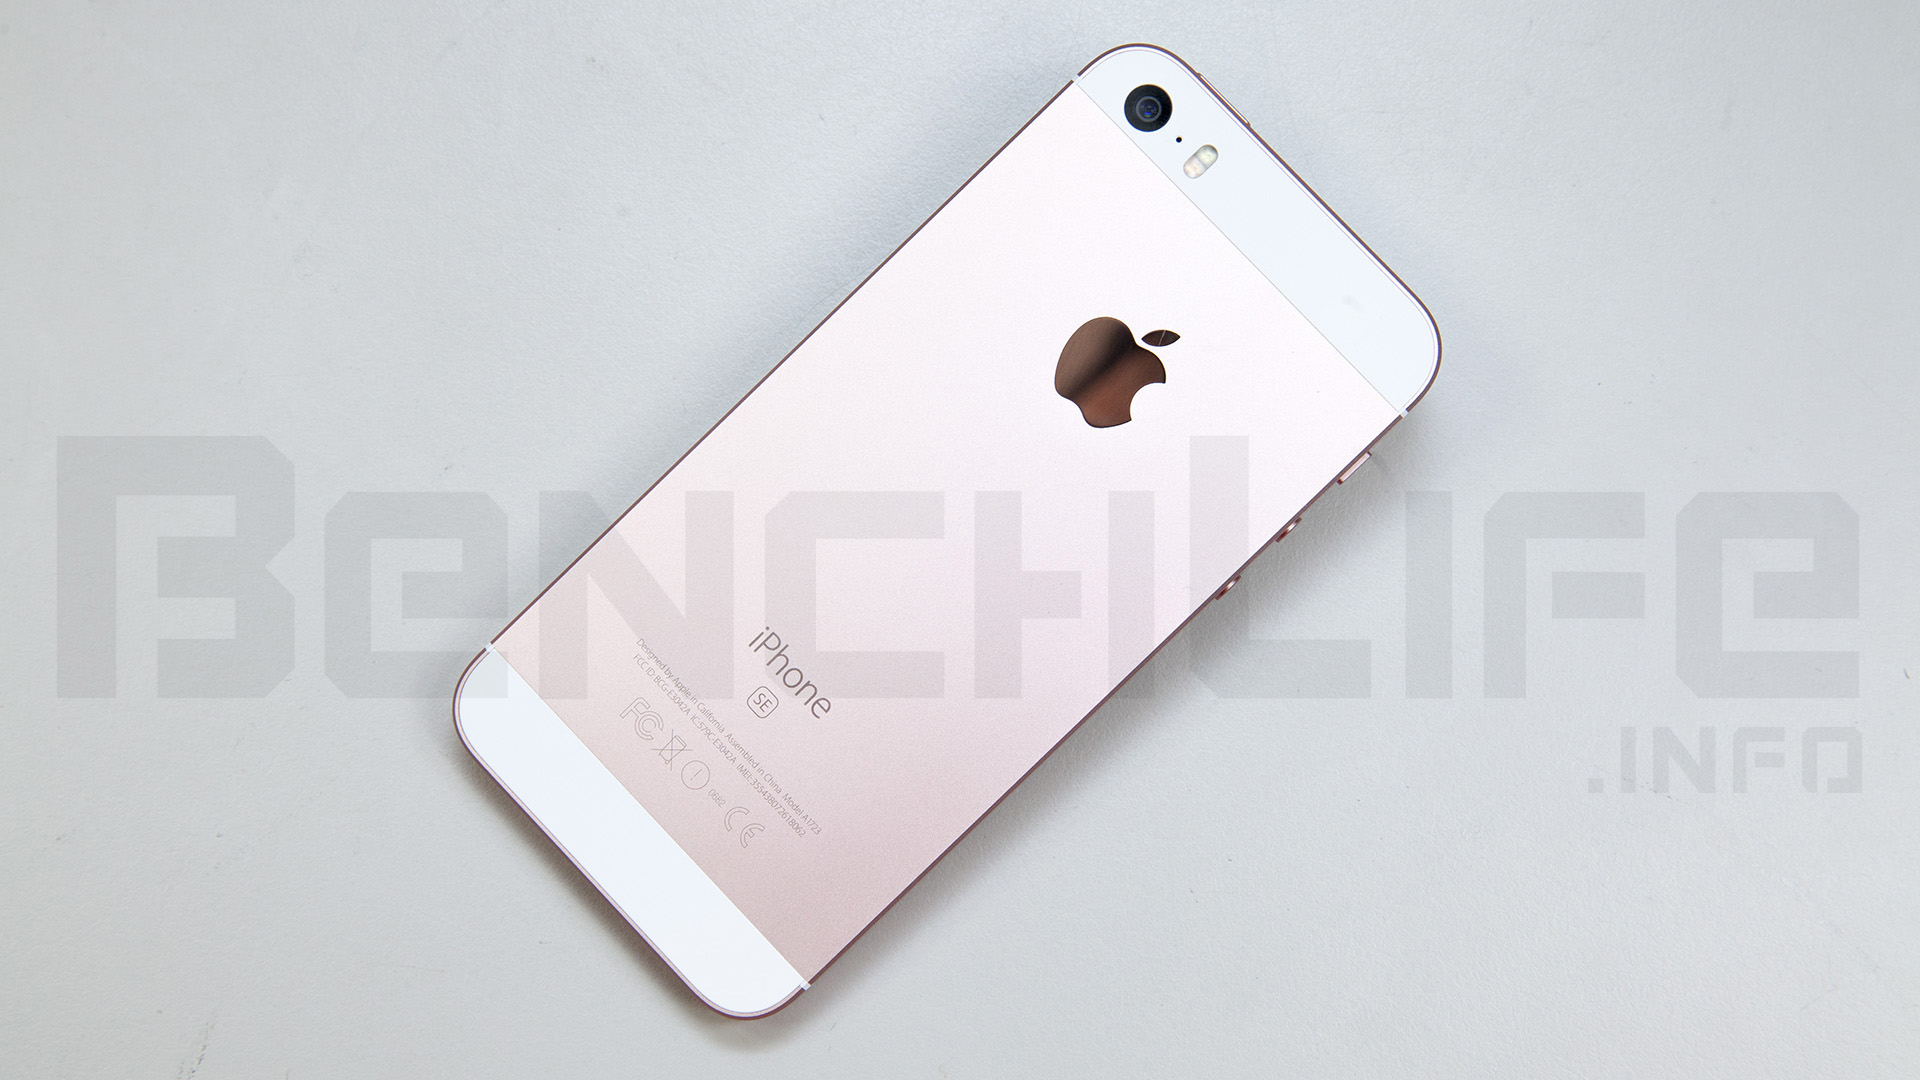 iphone se back